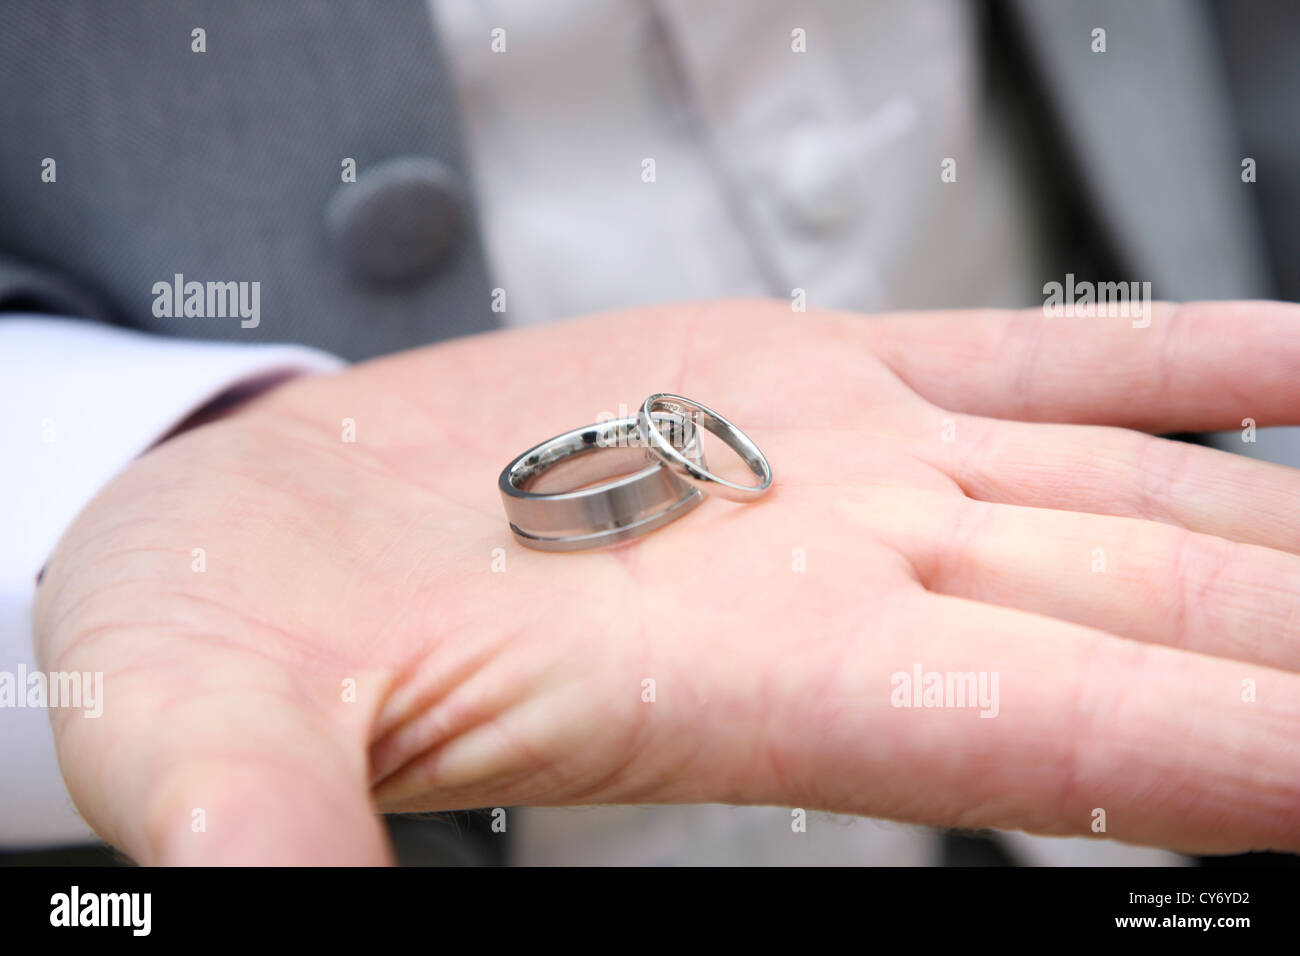 Rings On Open Hand Stock Photos & Rings On Open Hand Stock Images ...